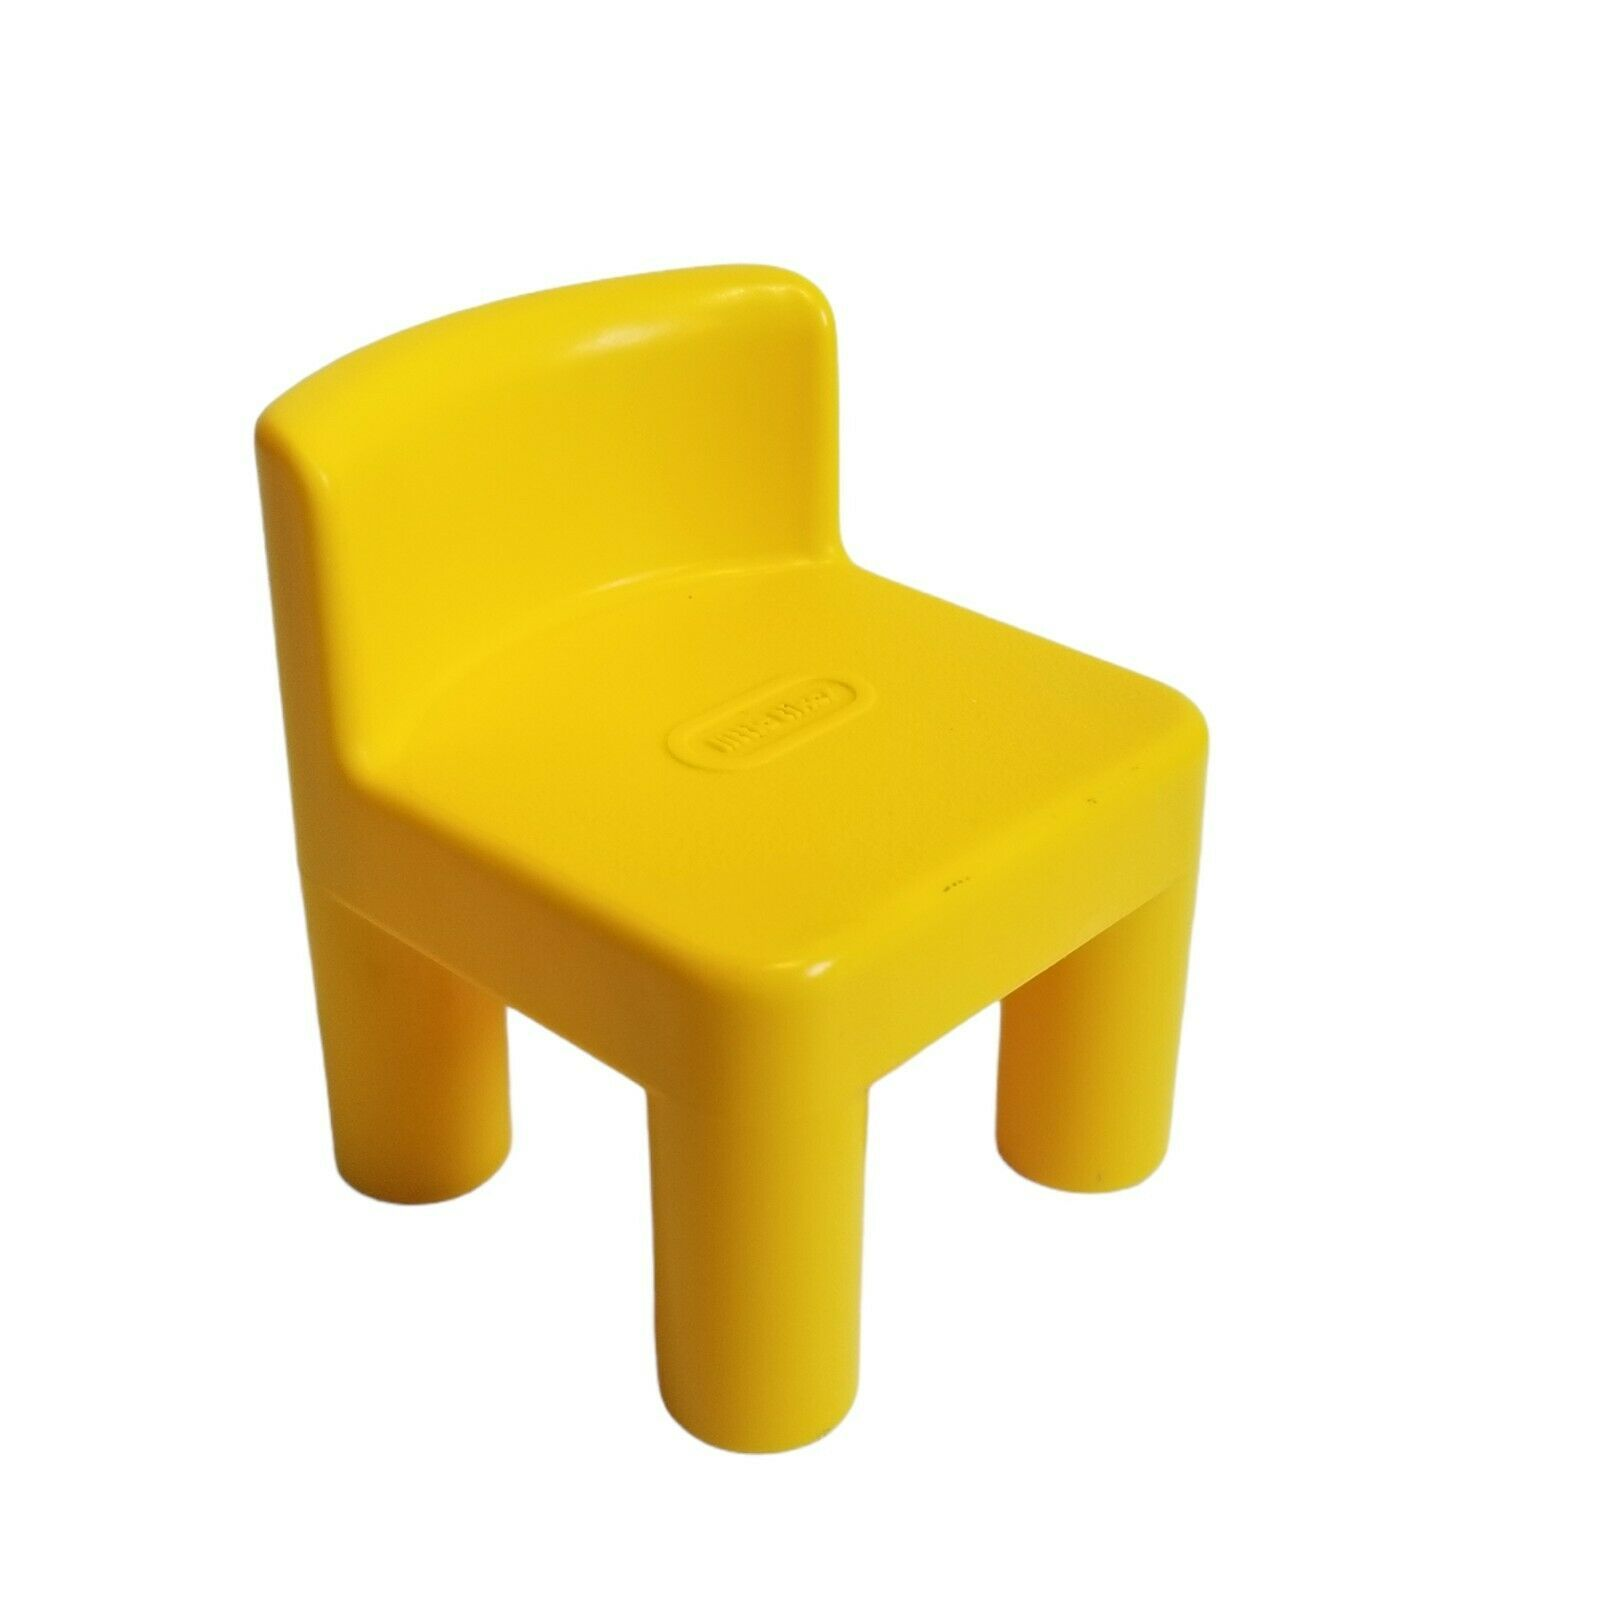 """Vintage Little Tikes Dollhouse Yellow Desk Chair for 6"""" Doll accessories  - $8.99"""